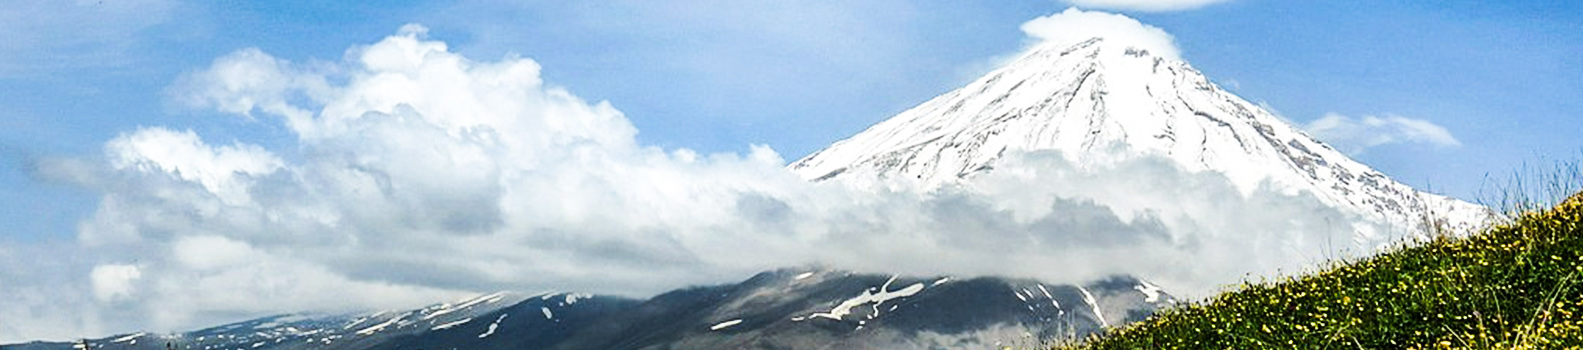 Damavand,To iran,Iran Adventure tour